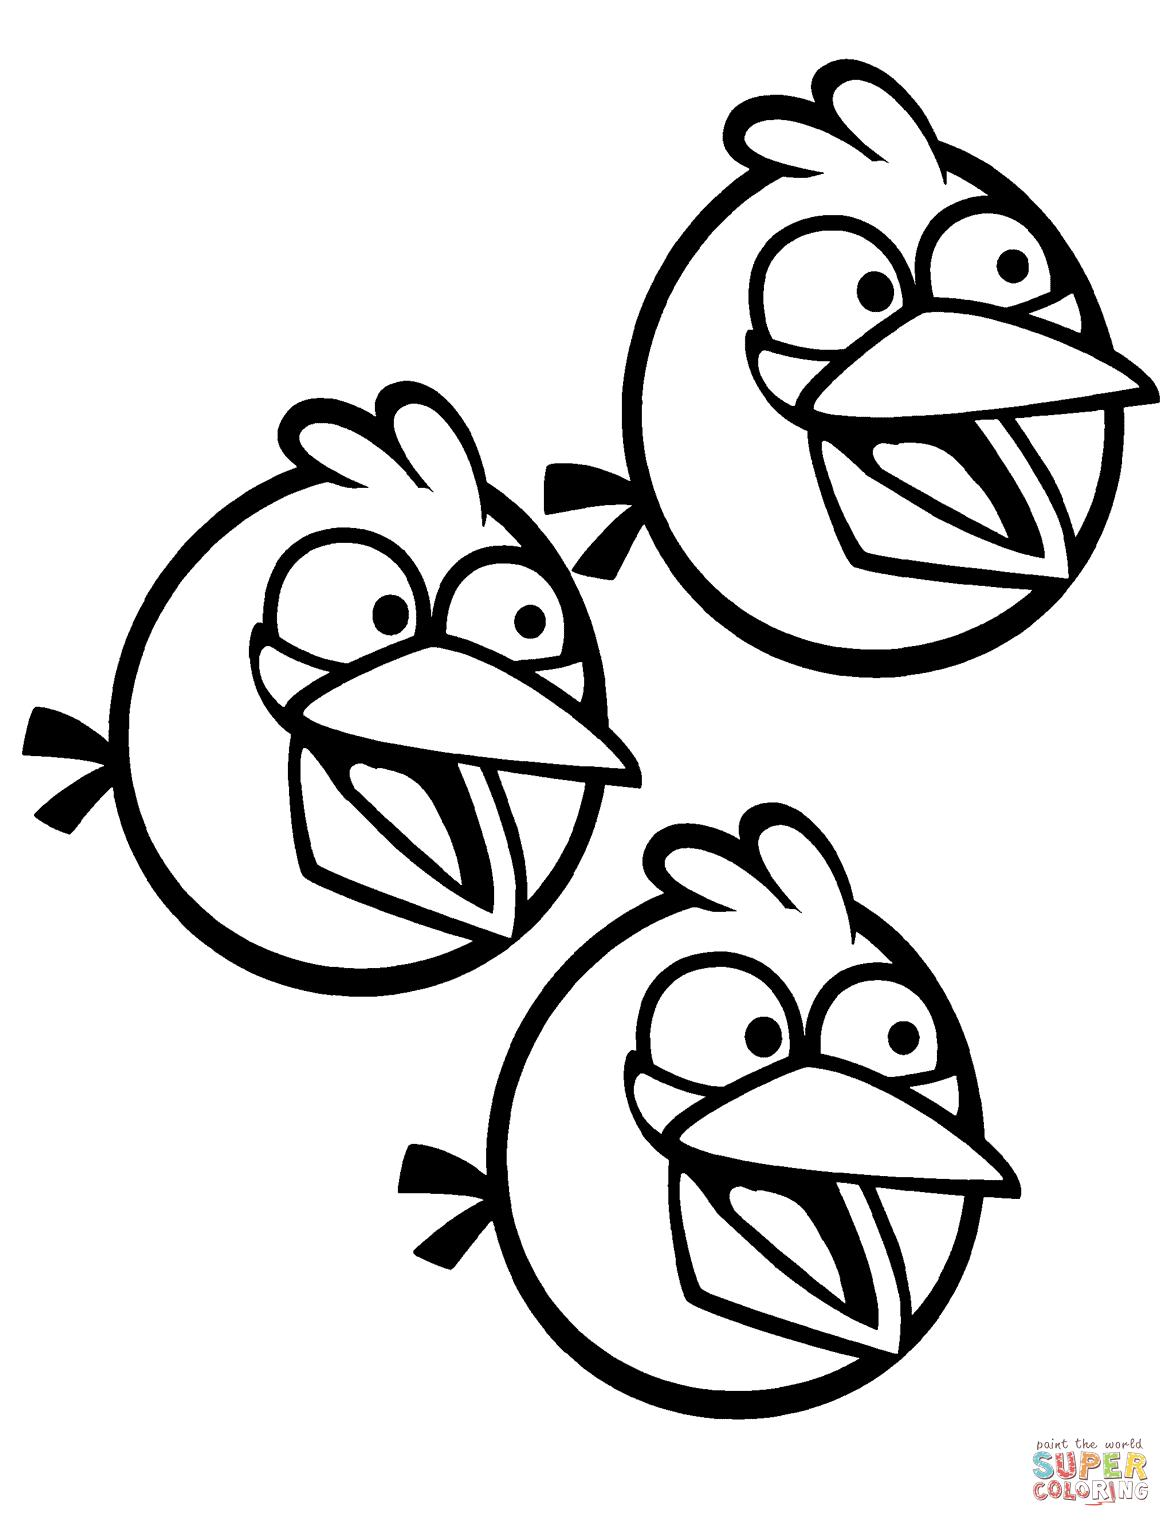 1171x1527 Angry Birds Blue Bird Coloring Pages Coloring Pages